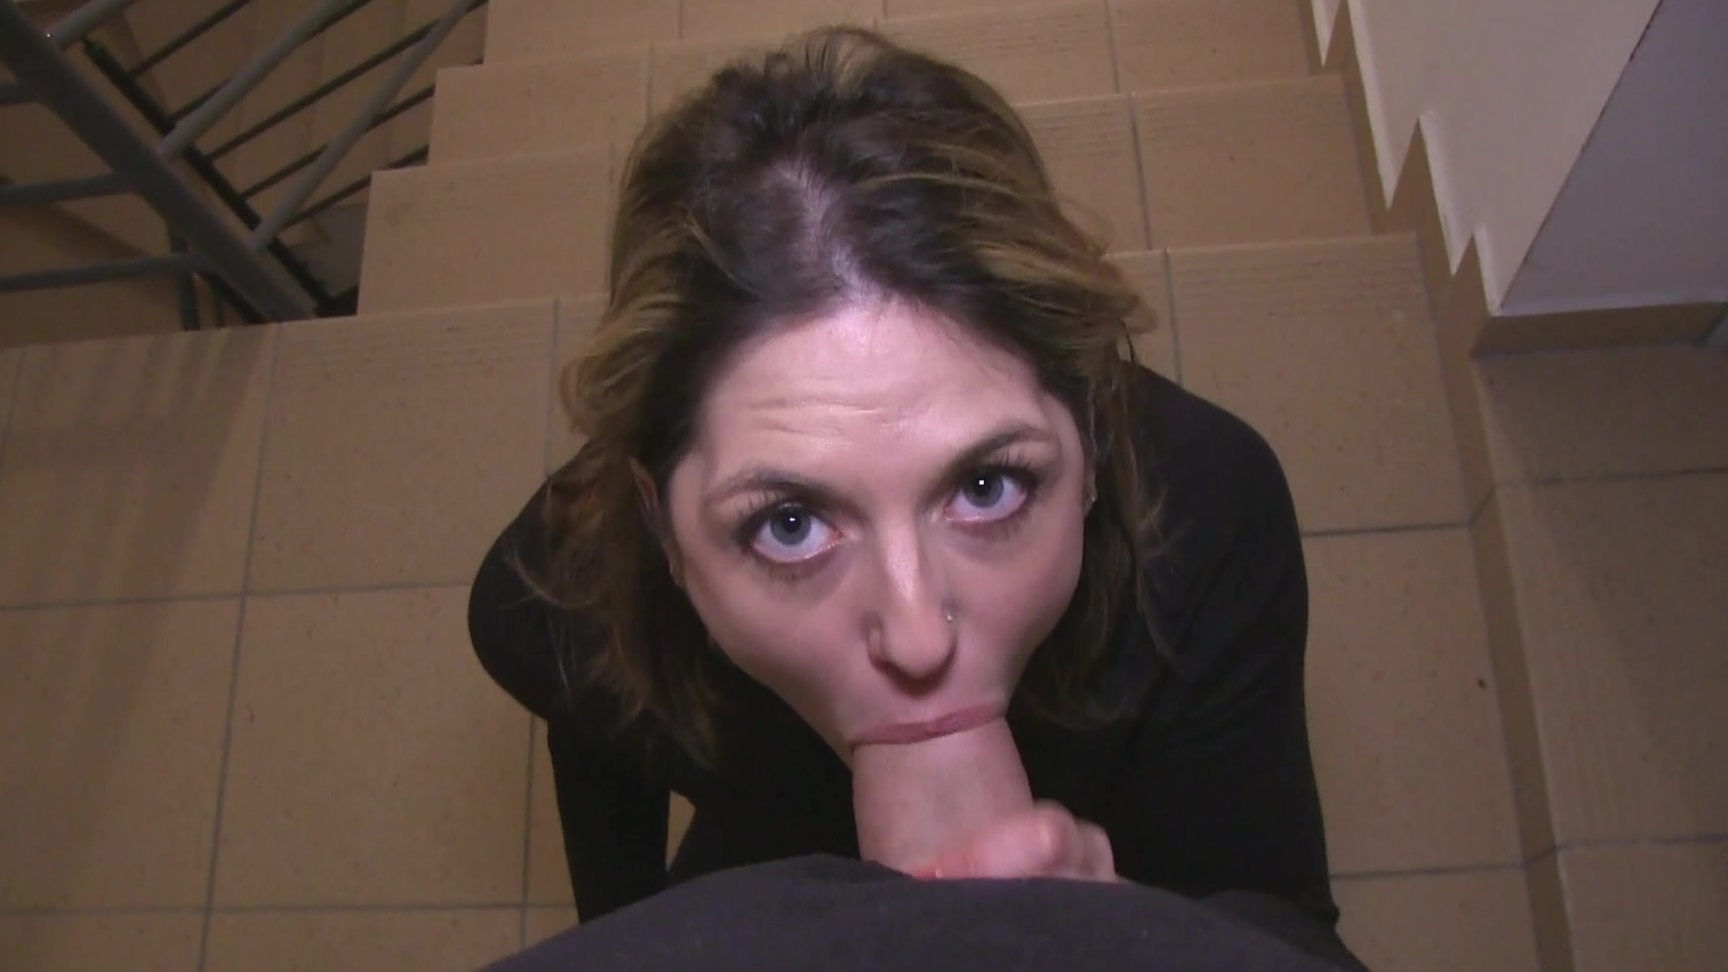 French babe Rachel Adjani gives bj and gets fucked in pov in a stairwell